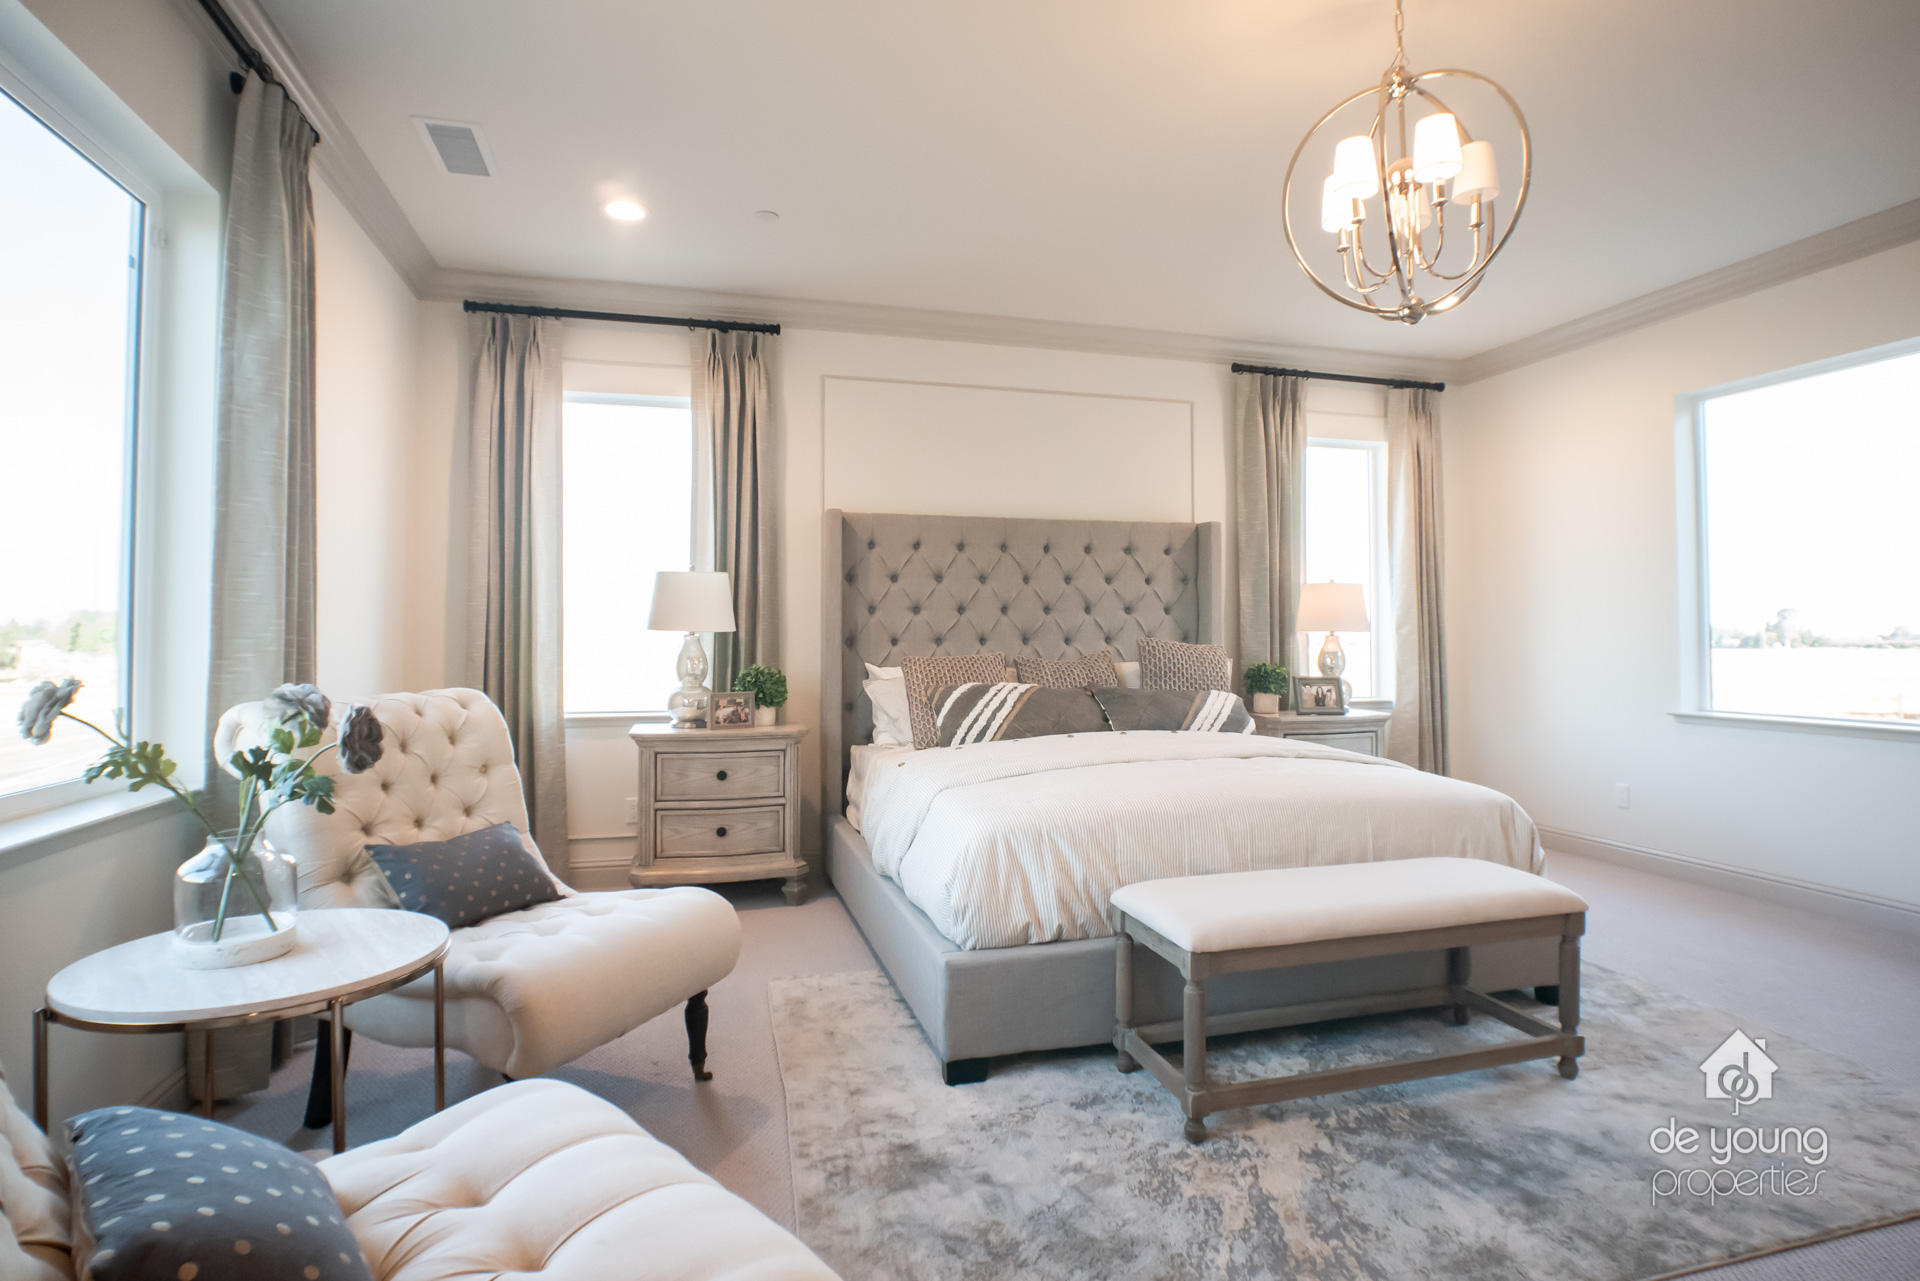 DeYoung Properties continues to see high demand for new homes!